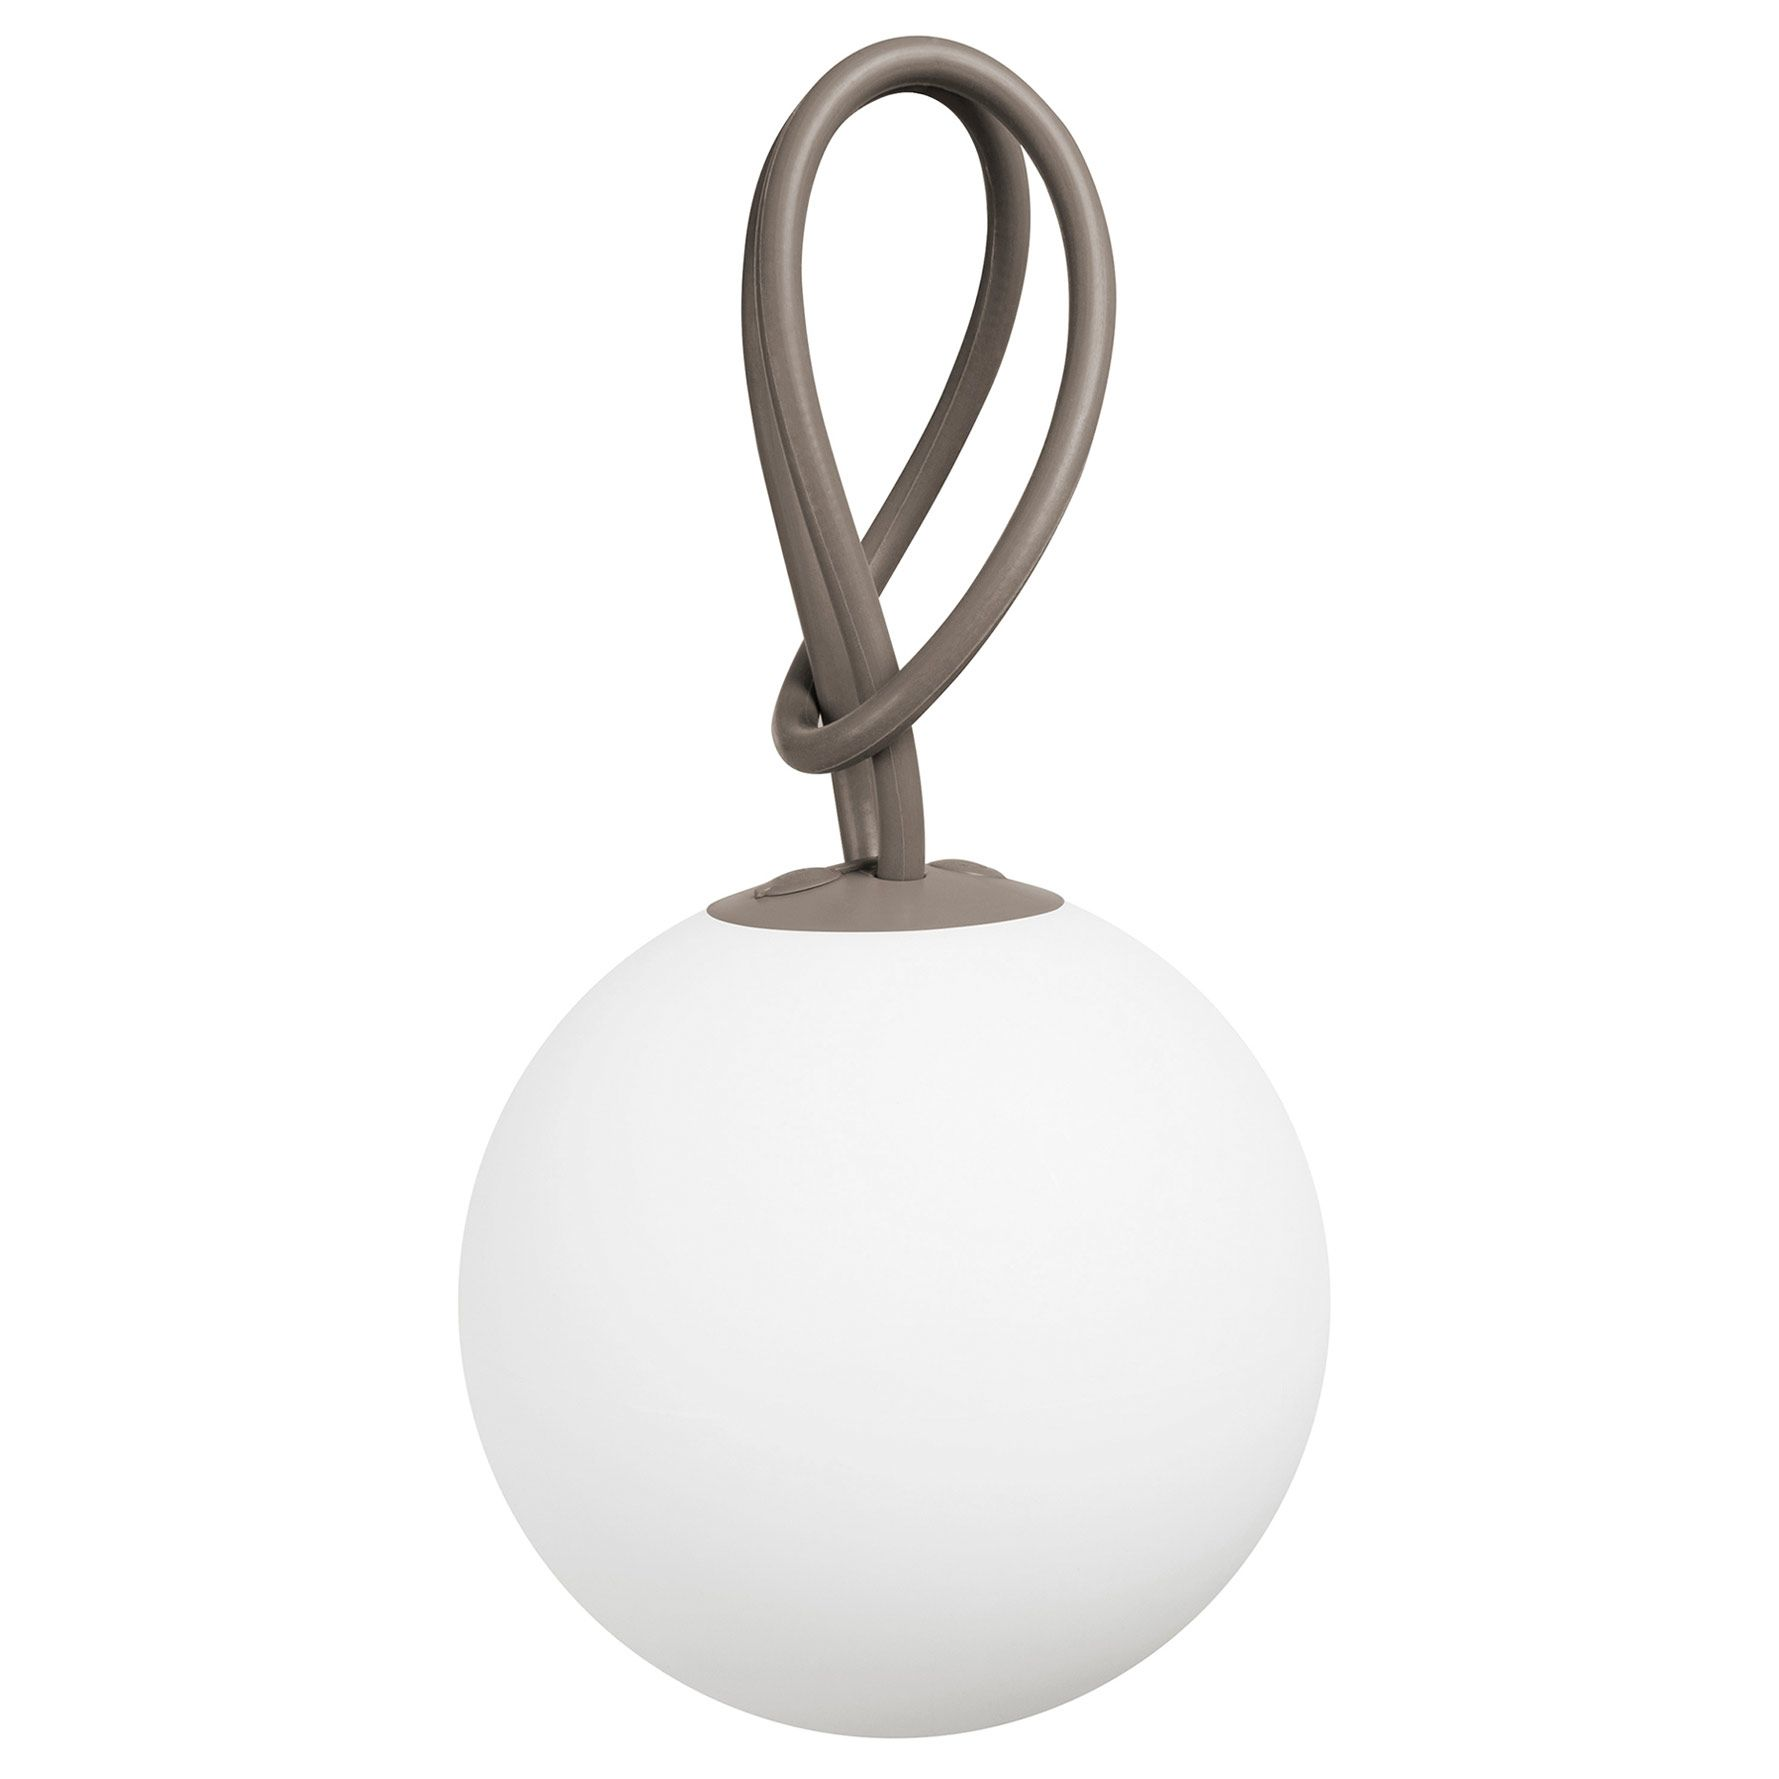 Bolleke Outdoor Portable Light By Fatboy Usa Bolleke Taupe With Images Lamp Portable Light Portable Lamps